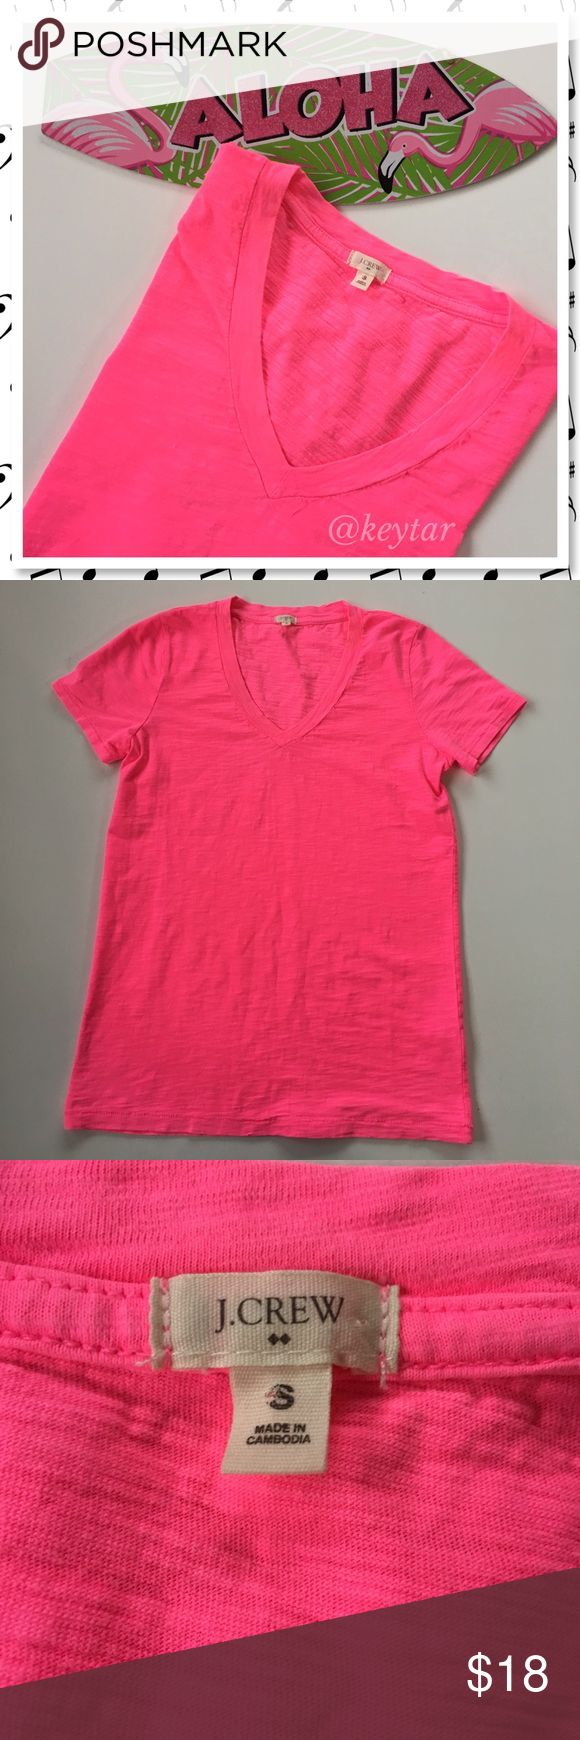 J. Crew Hot Pink V Neck Basic Tee Update your wardrobe basics with this Hot Pink V neck tee by J. Crew. Very vibrant color with a slight texture. Similar to a burnout fabric but not so thin (check out that close up!) So easy to wear. Pair with your favorite skinny jeans or throw on some comfy joggers.   ❌ trades ❌ lowballs 👍offer button  🌟Bundle 2 or more items and save 10%🌟 J. Crew Tops Tees - Short Sleeve